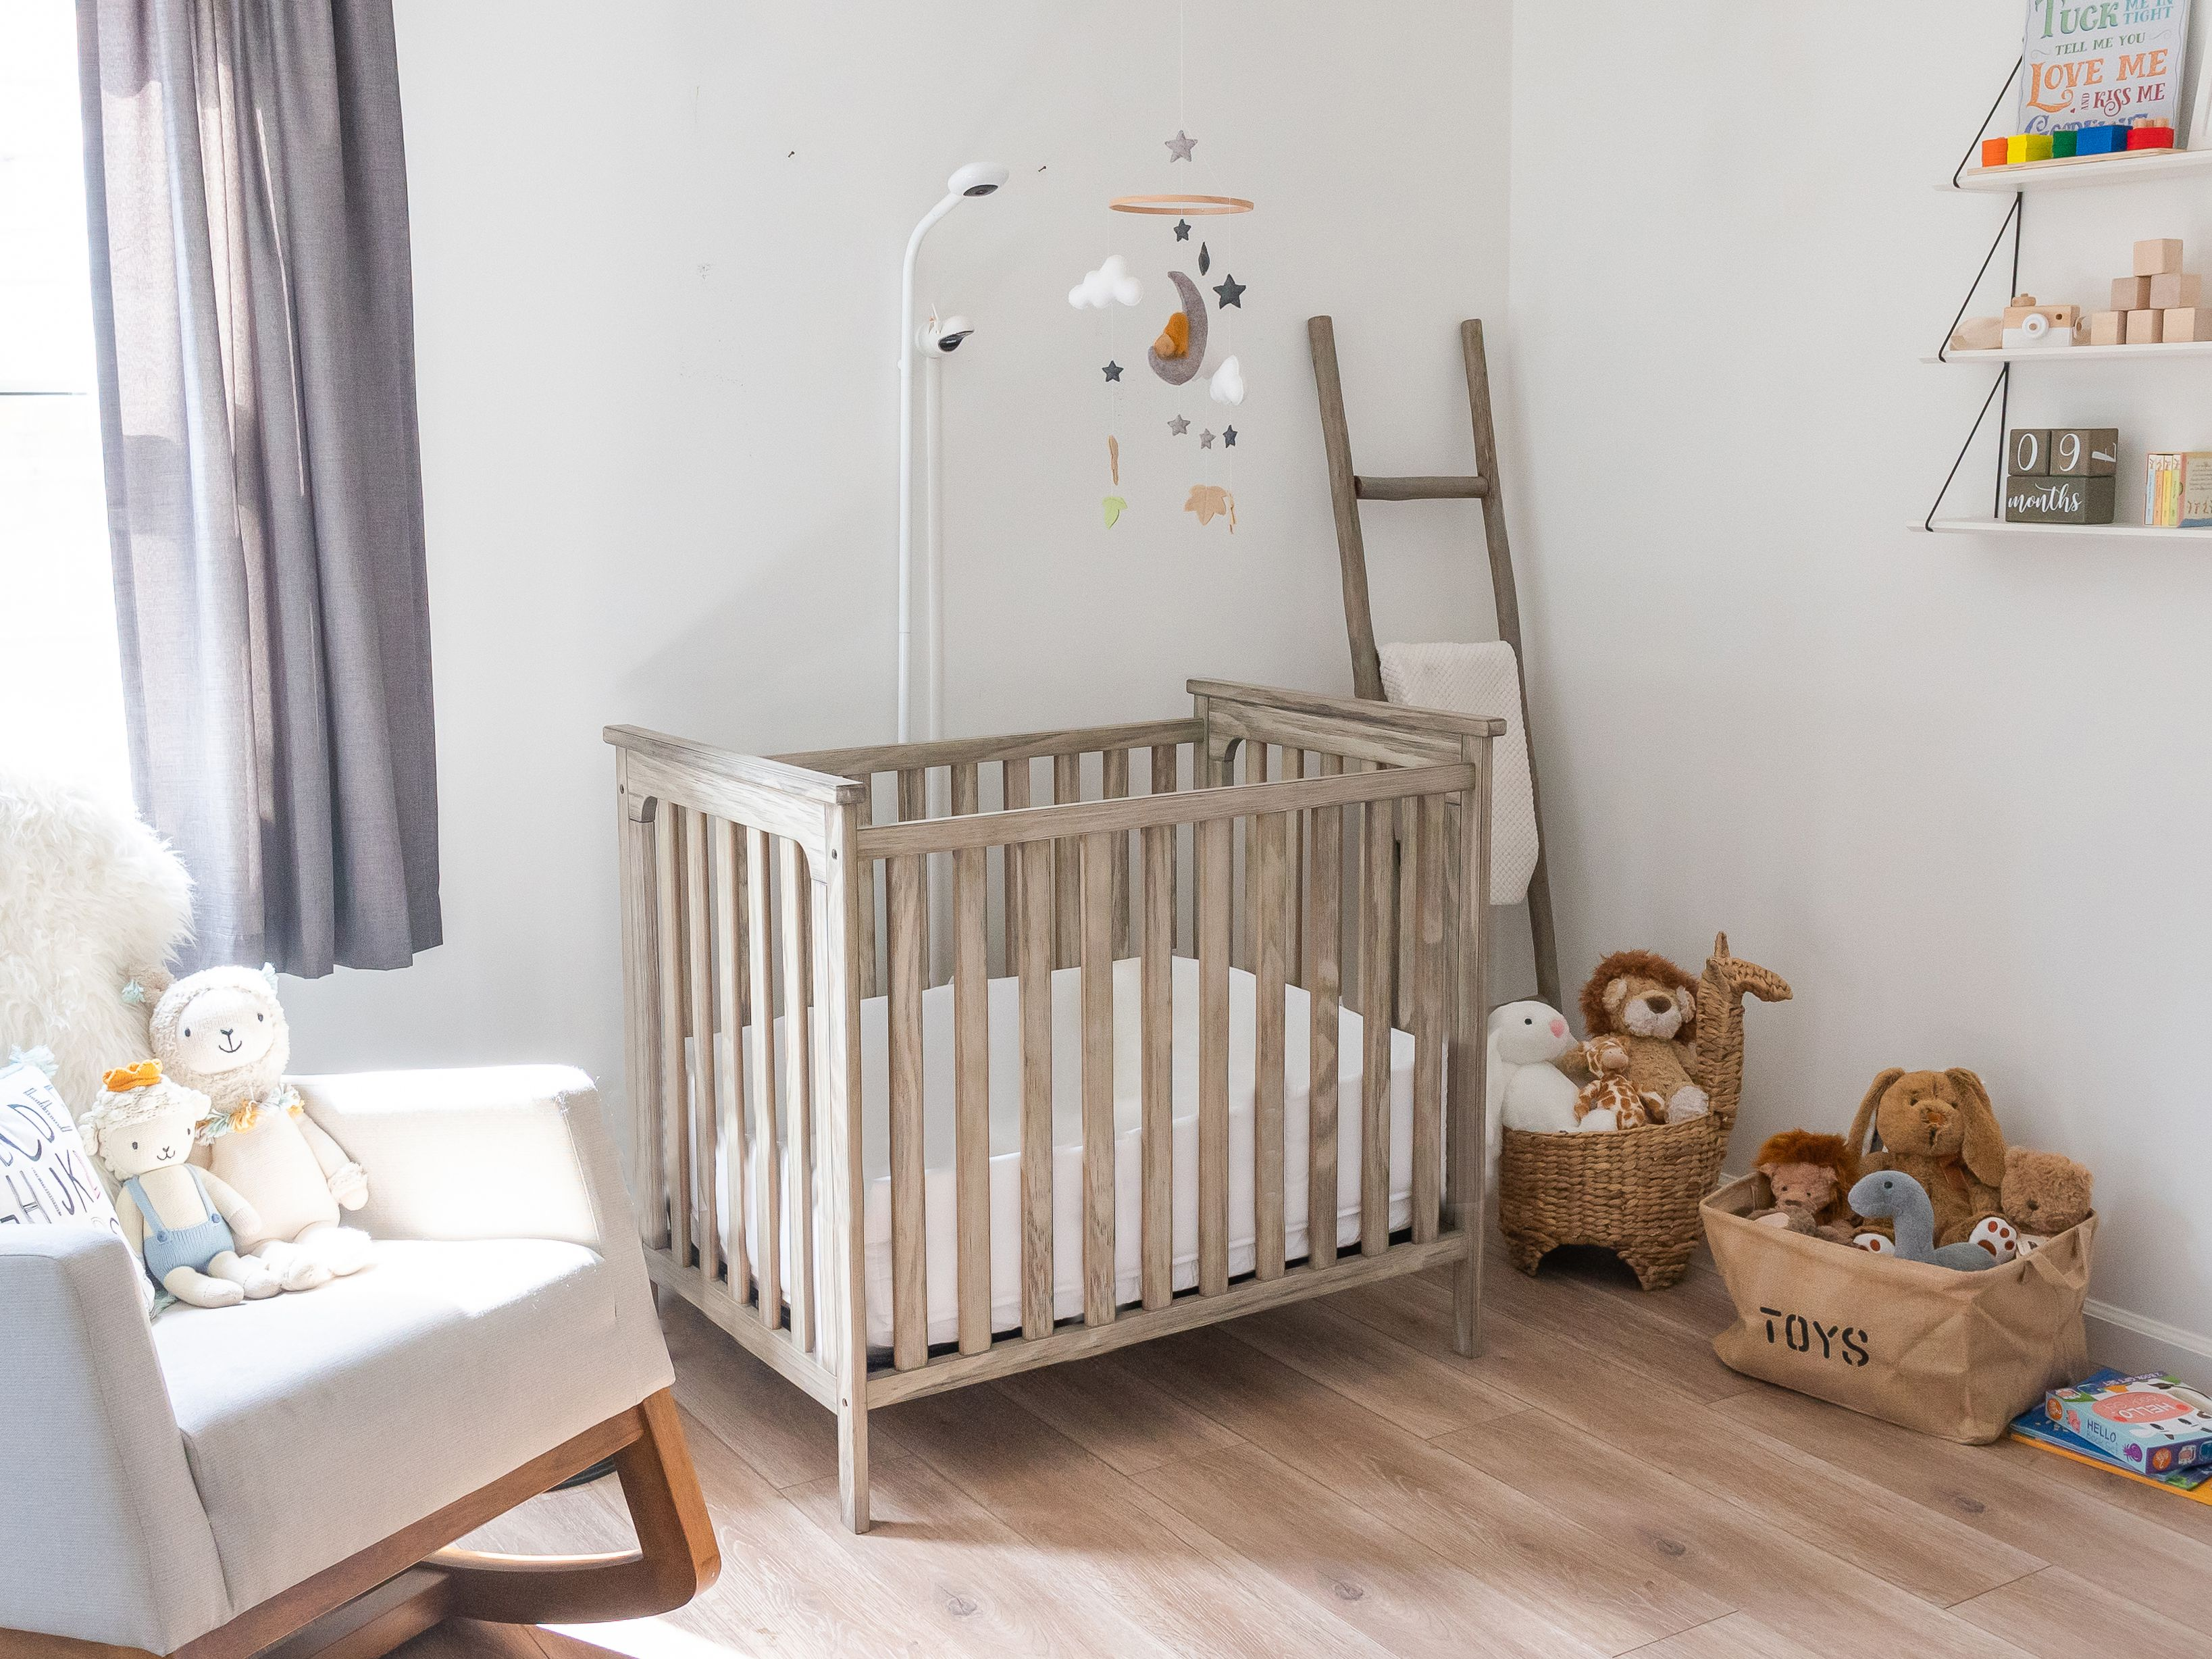 How to create a correct zoning in your baby's nursery